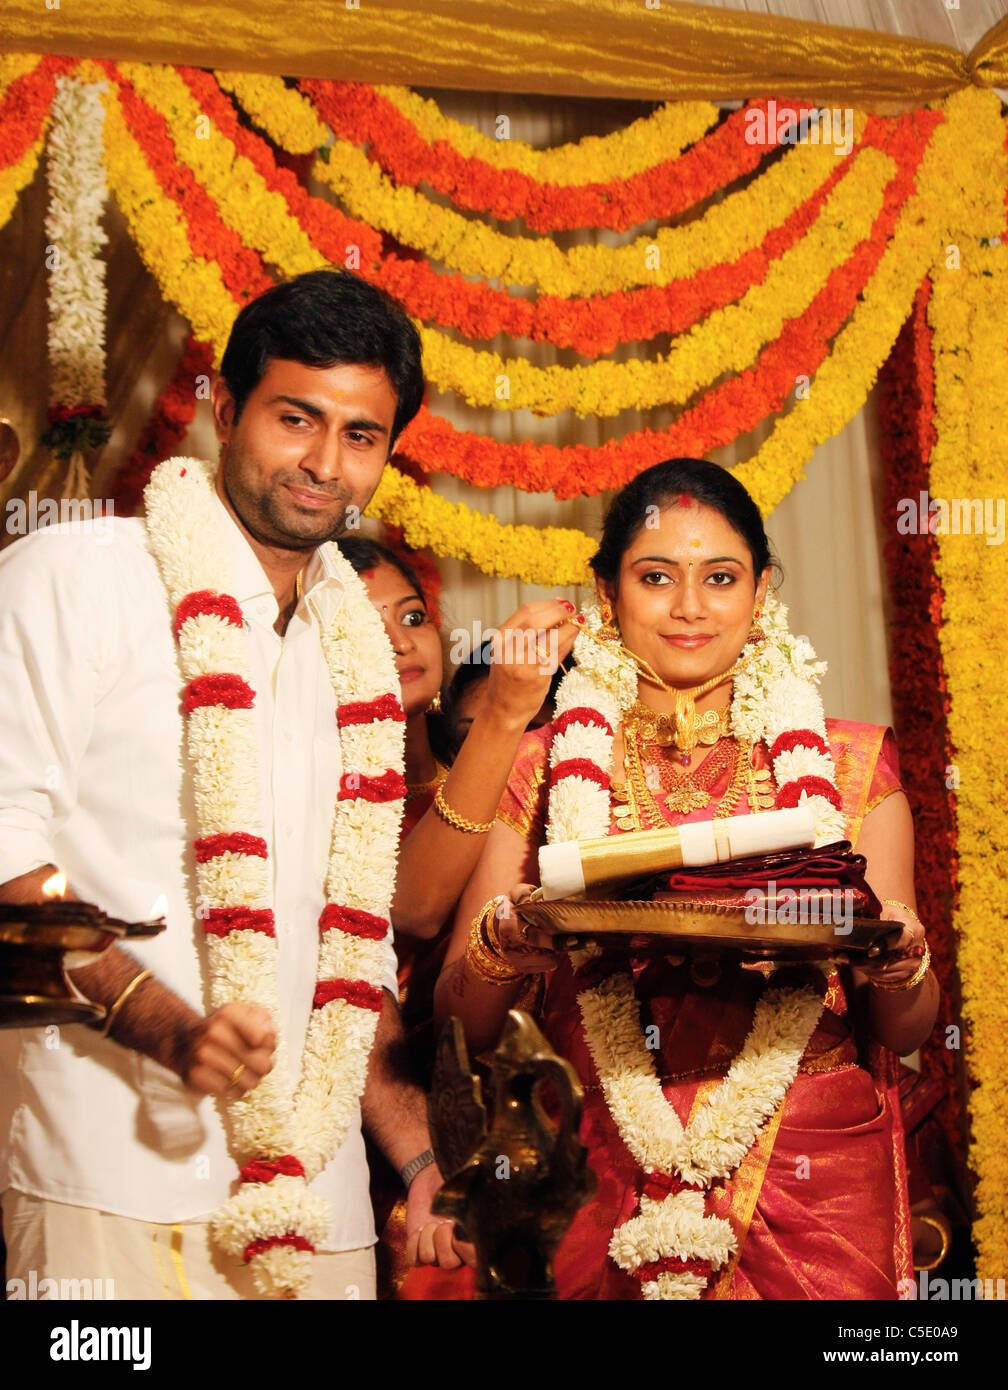 Bride and bridegroom standing after the marriage ceremony in an ...